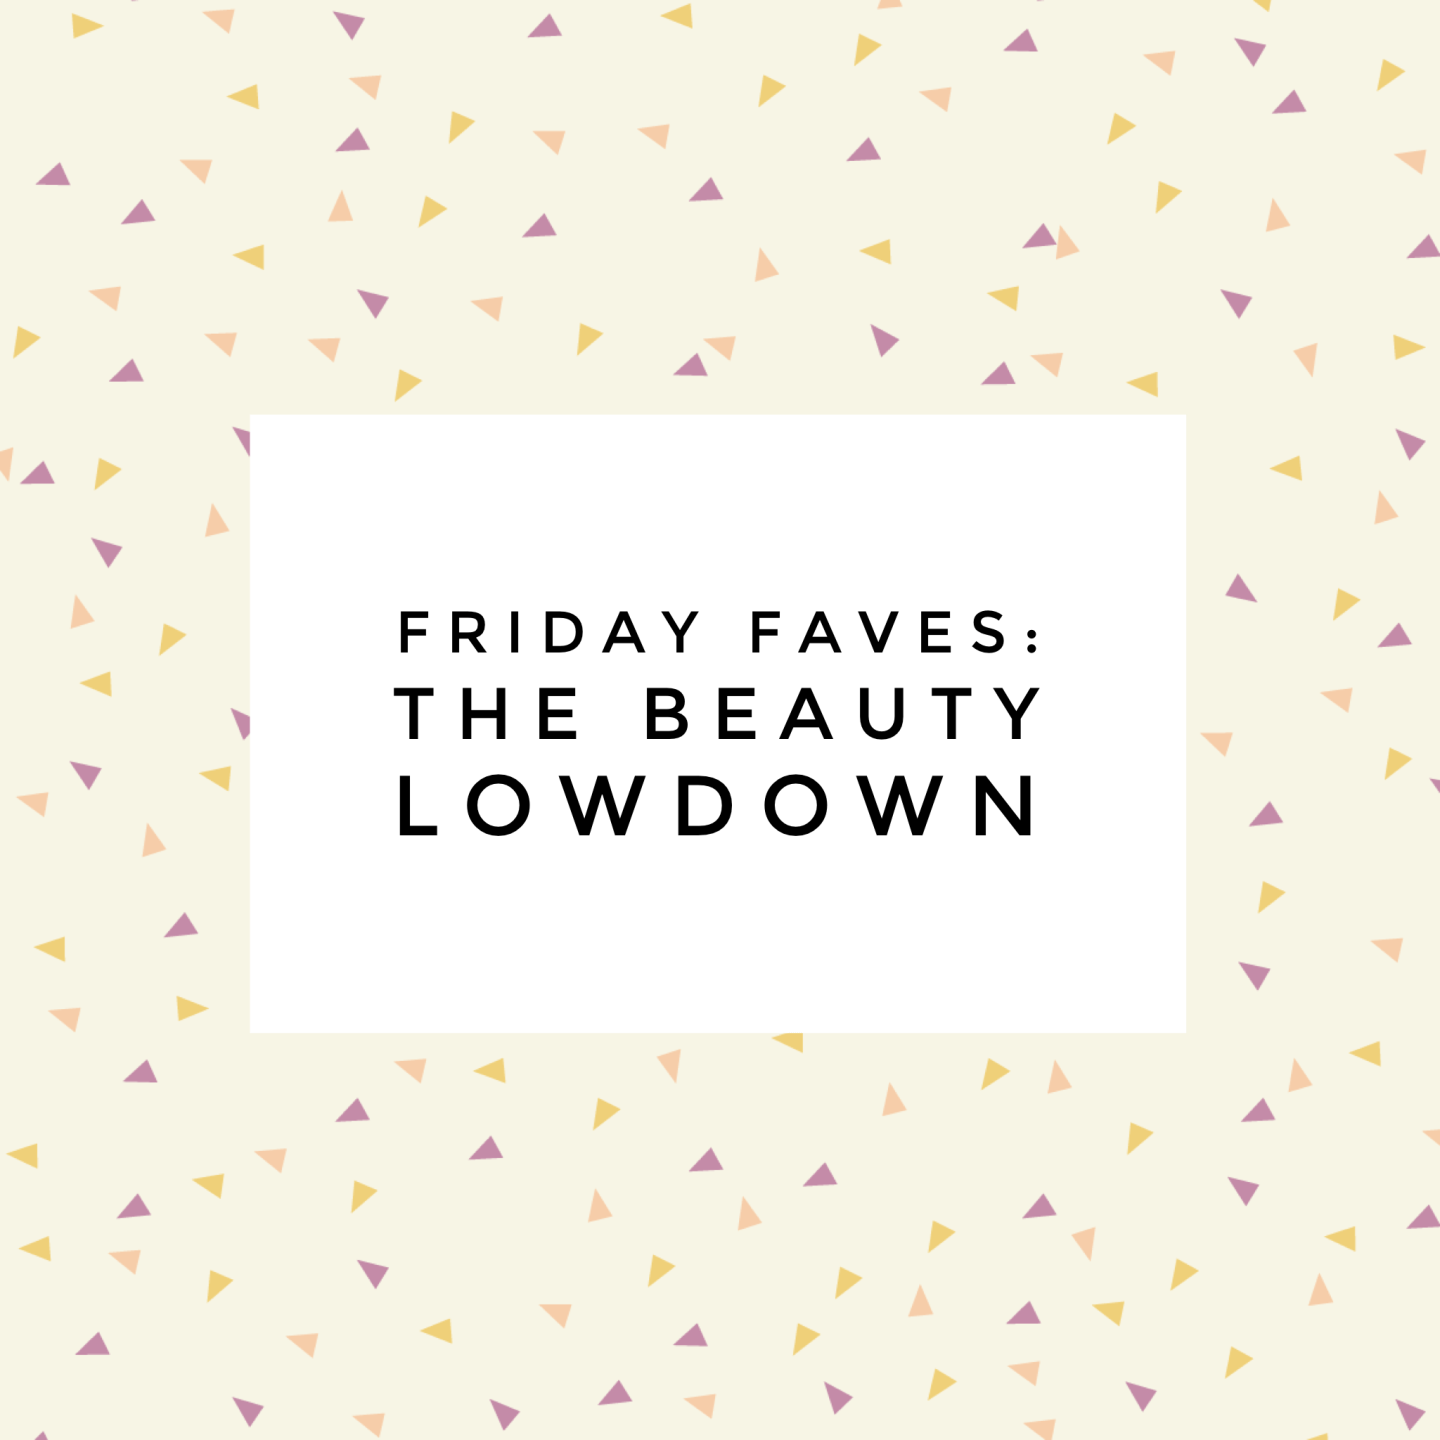 Friday Faves: the beauty lowdown